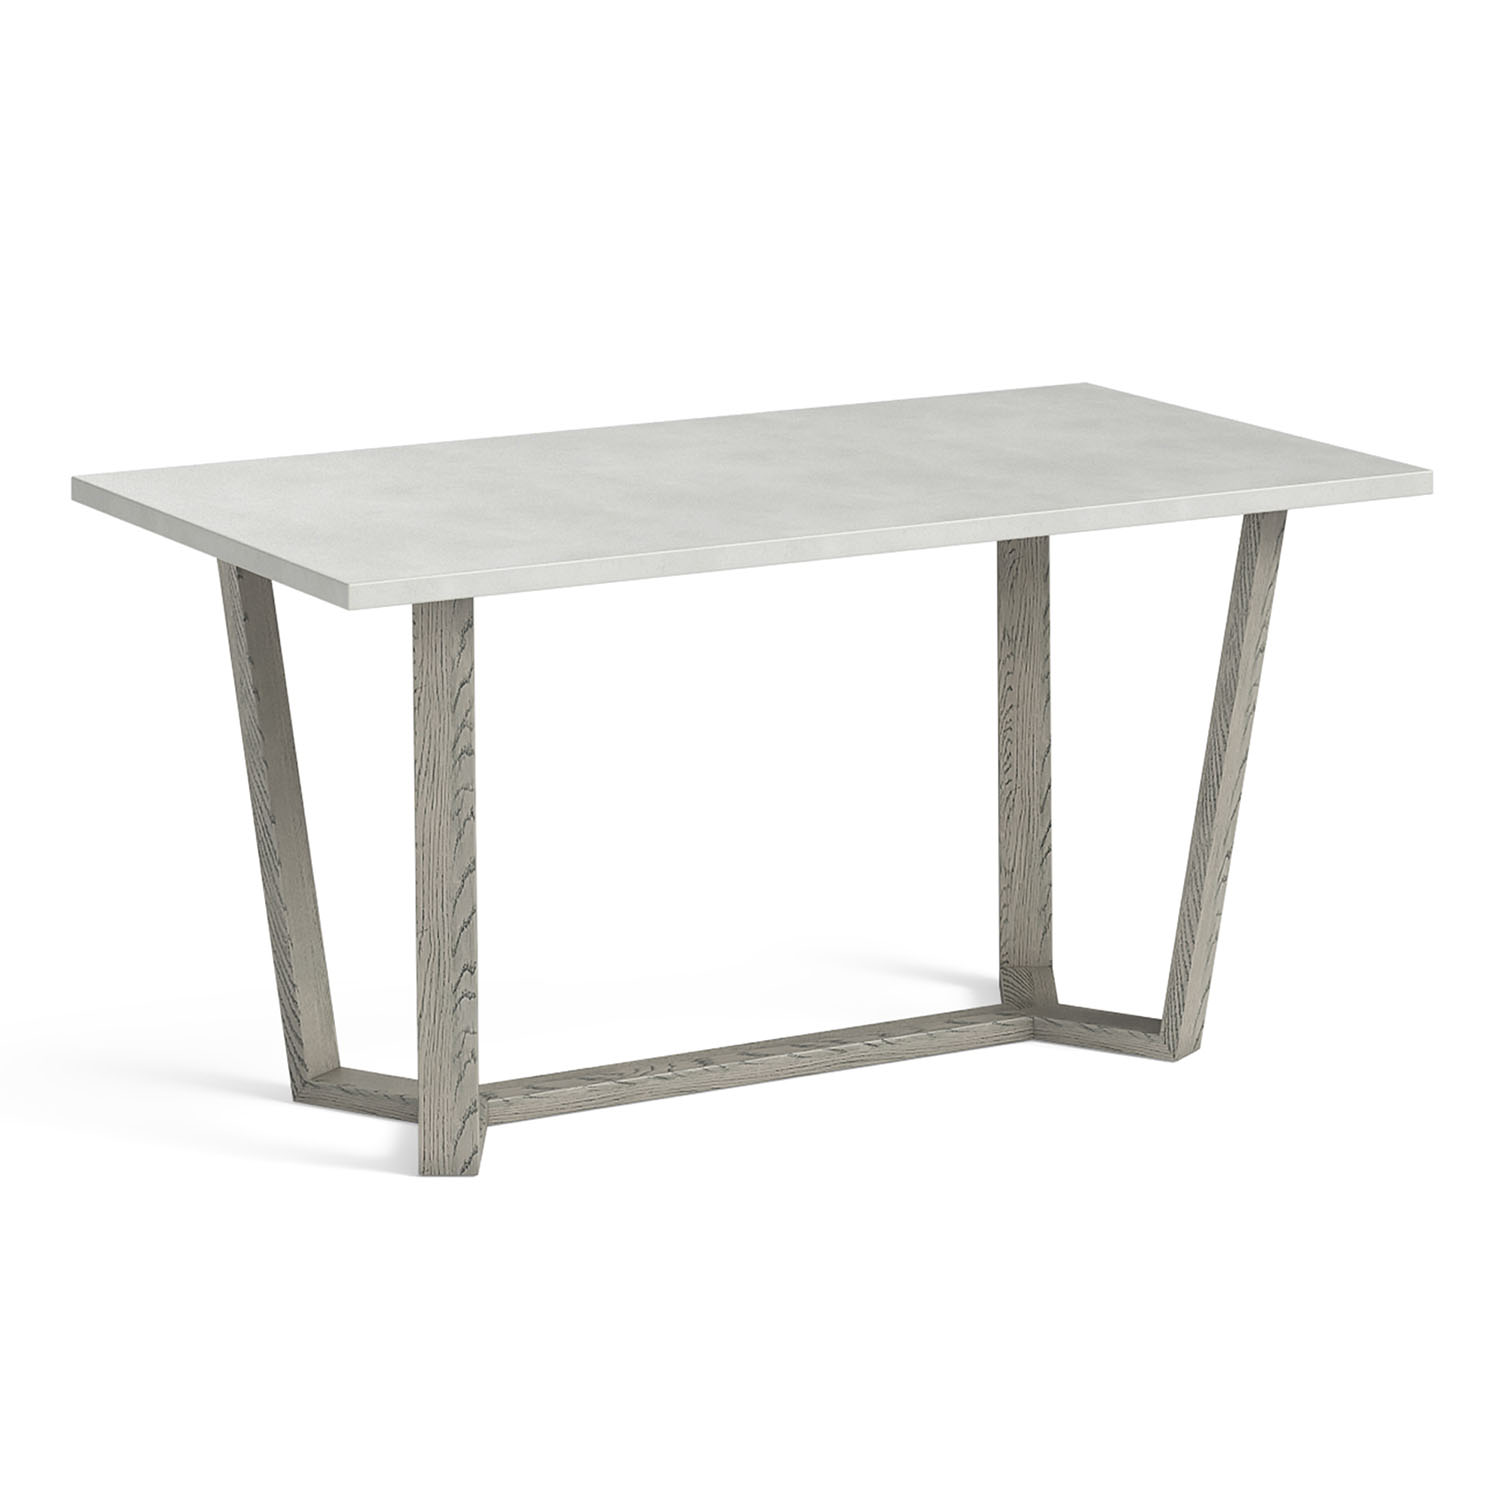 Harbour 150cm Dining Table